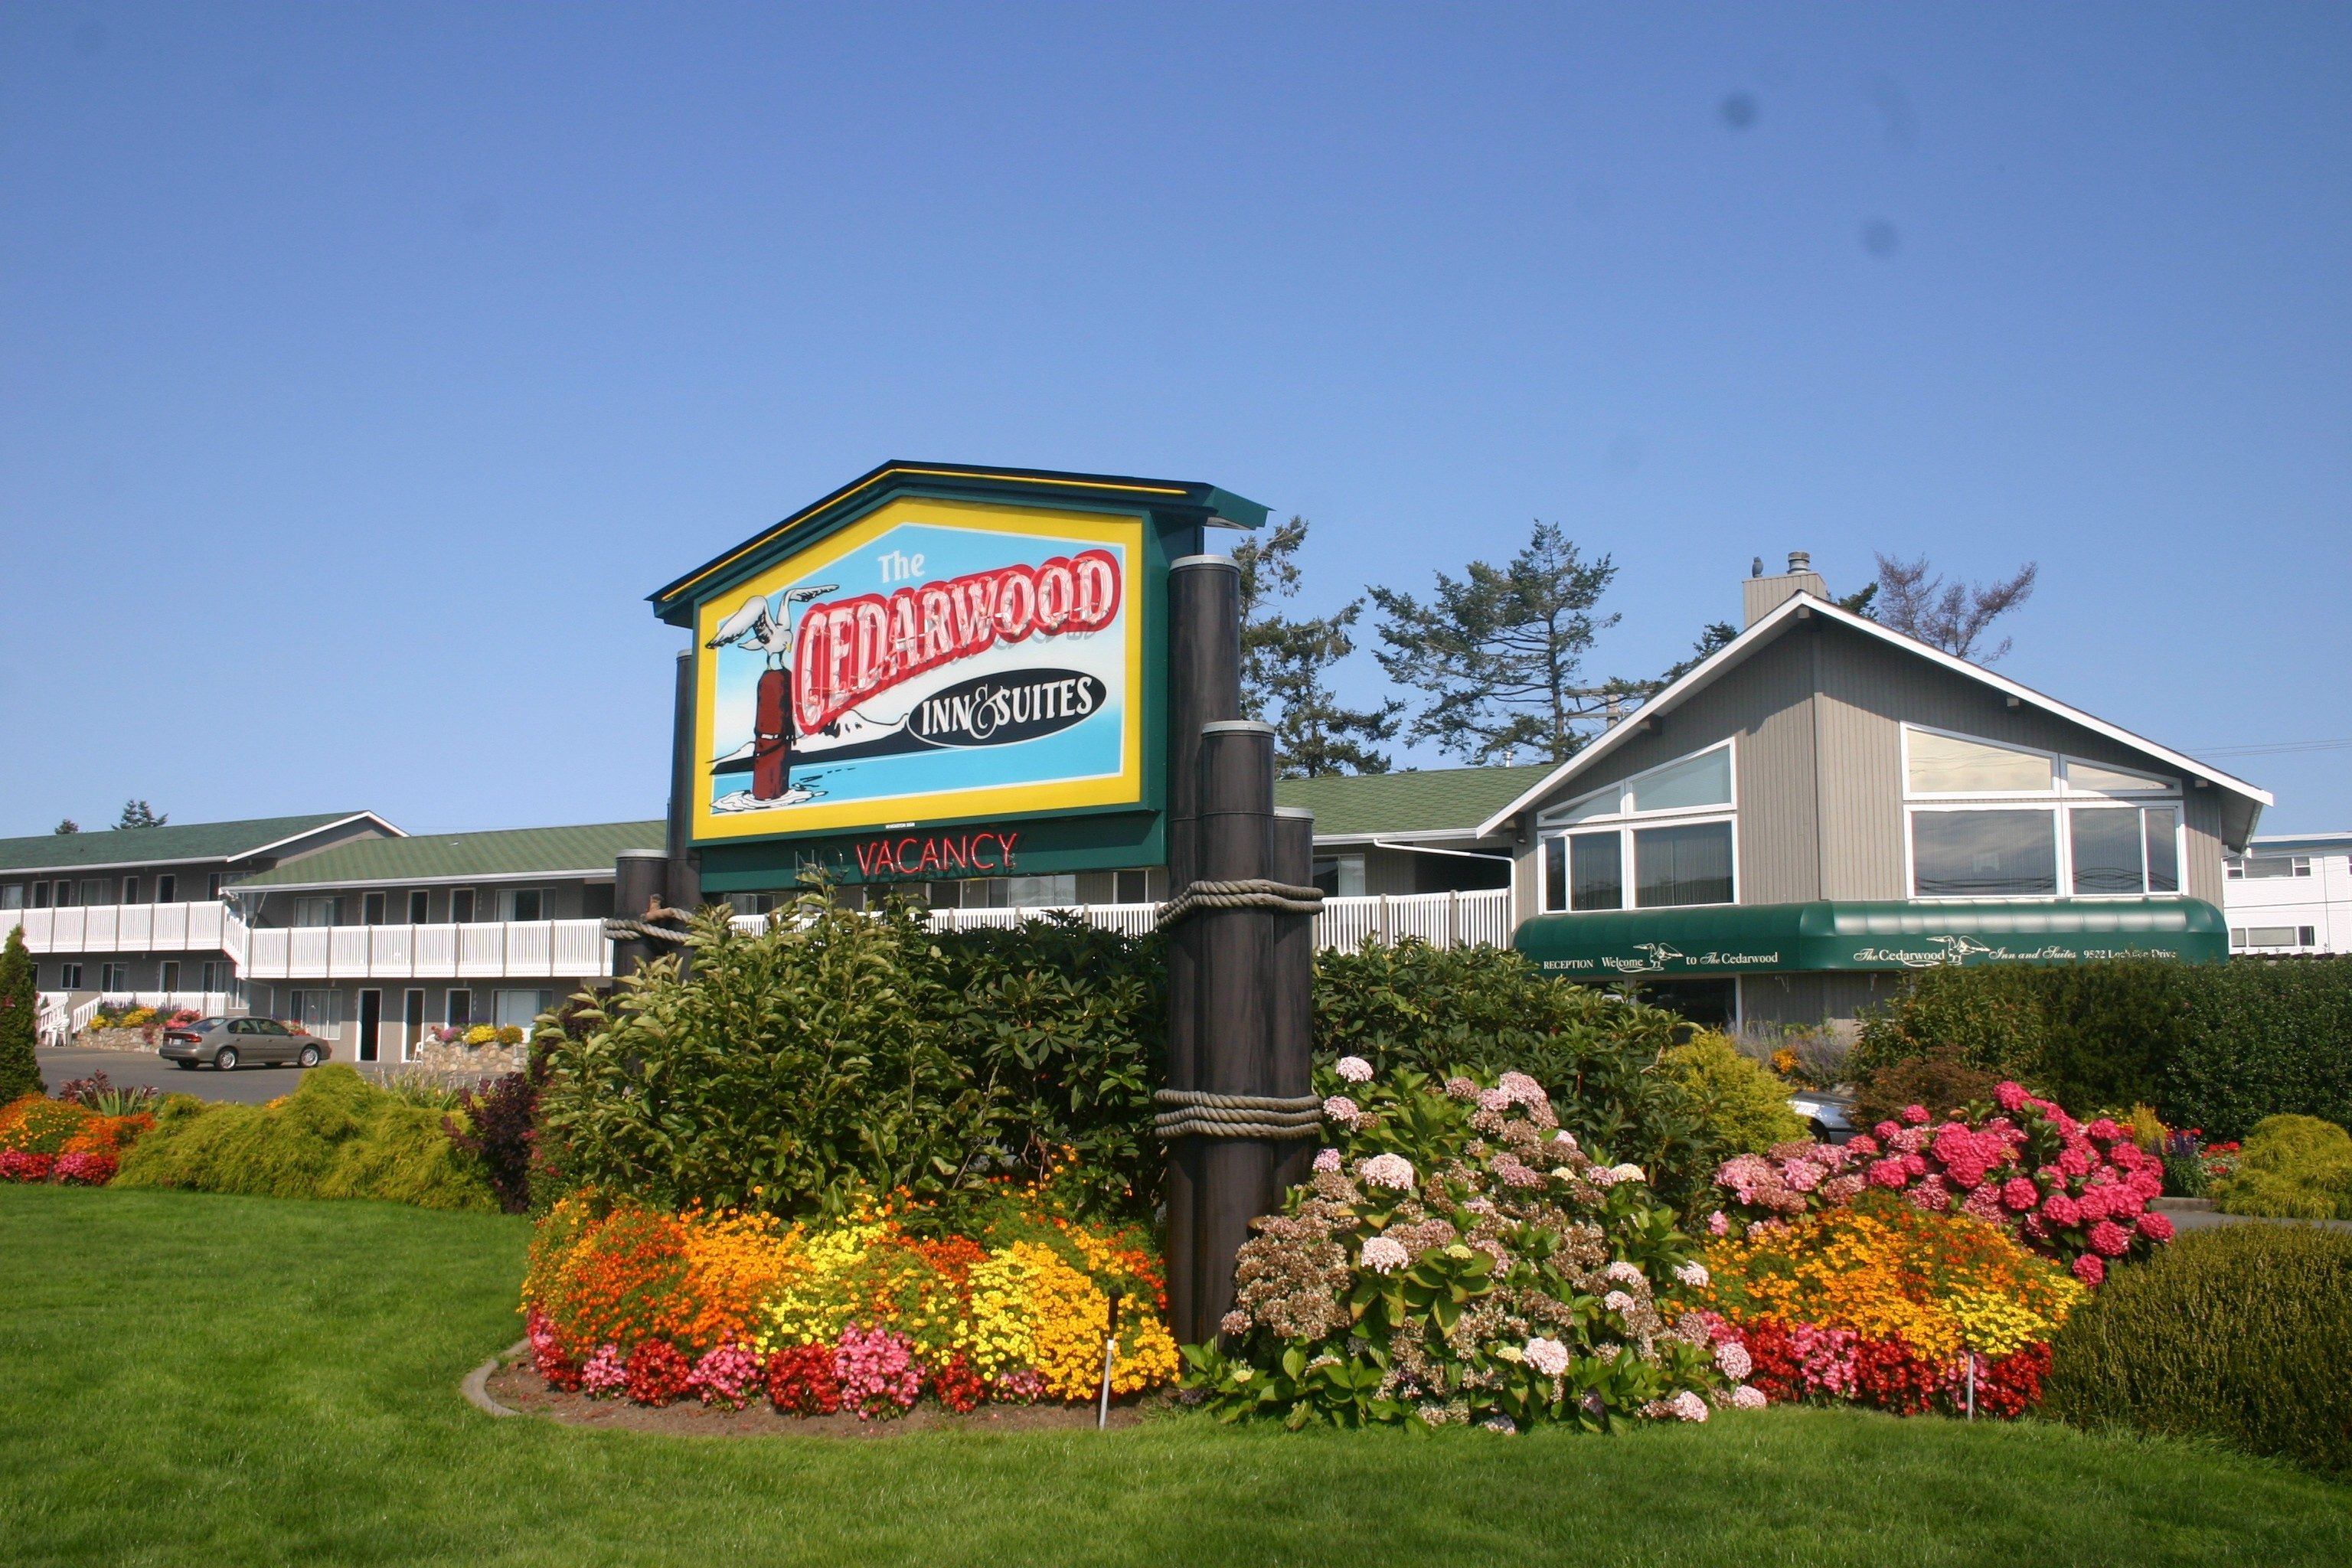 The Cedarwood Inn and Suites